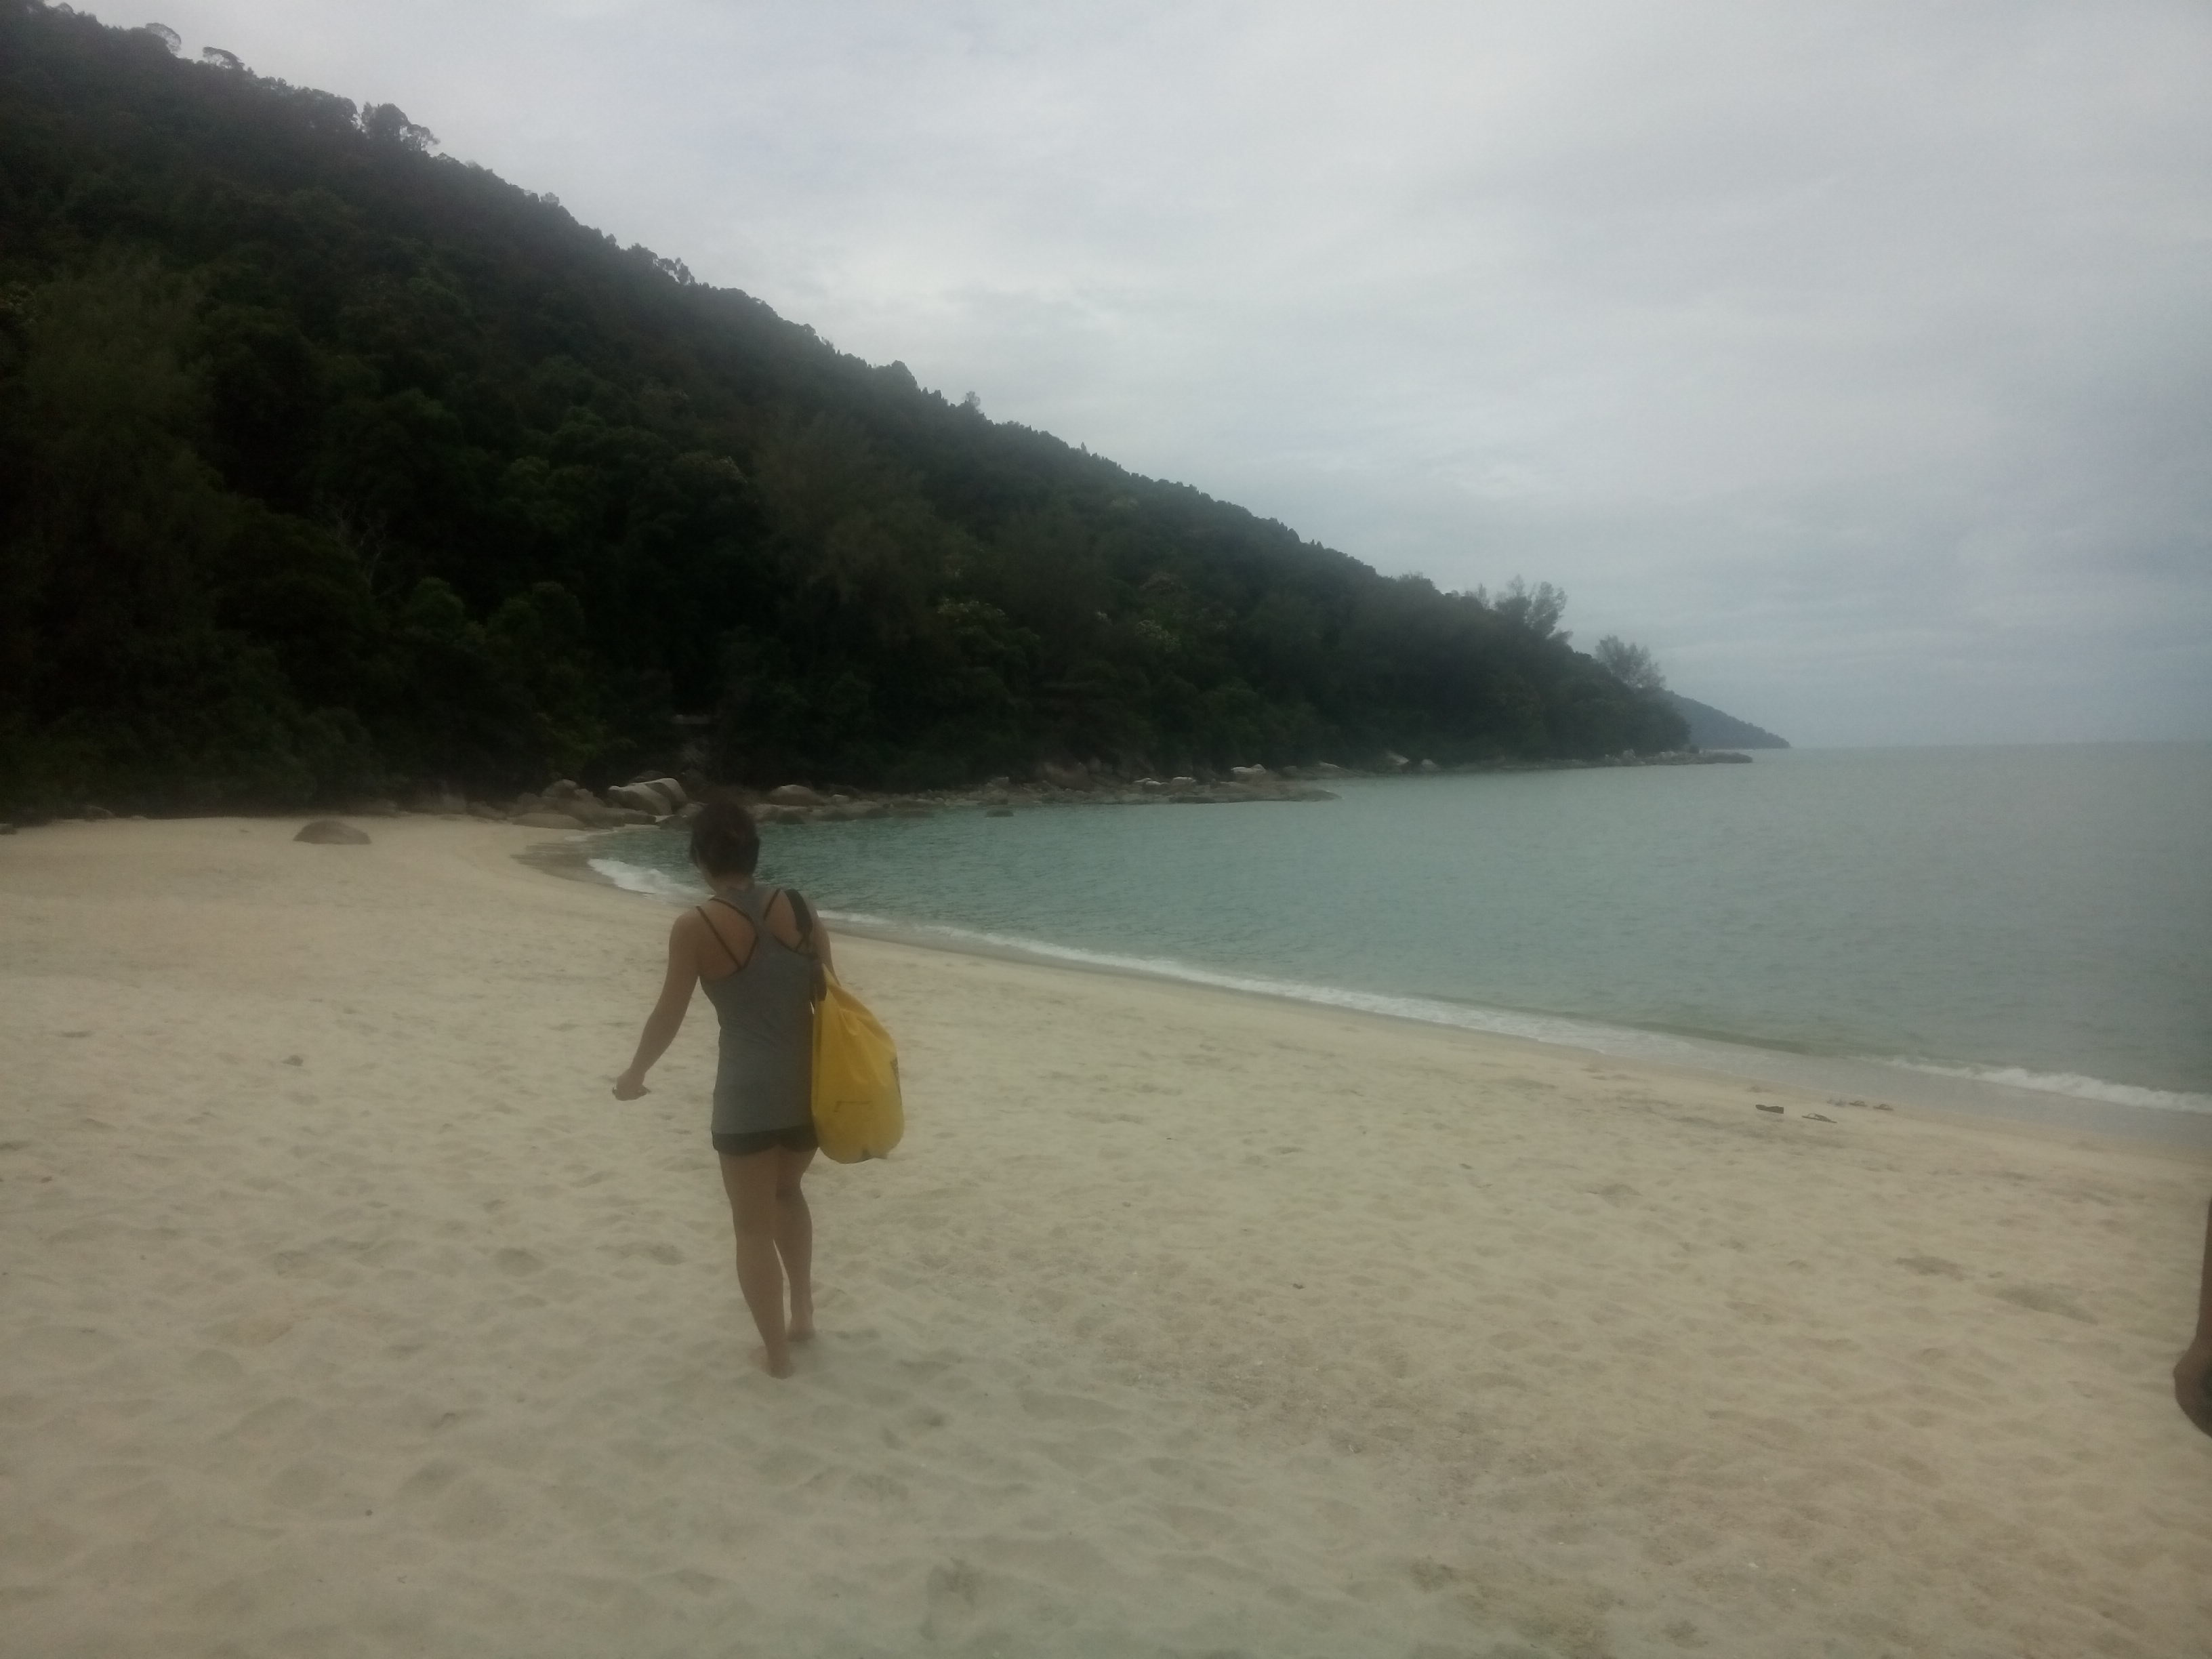 Sea and jungle background, sand foreground, woman walking